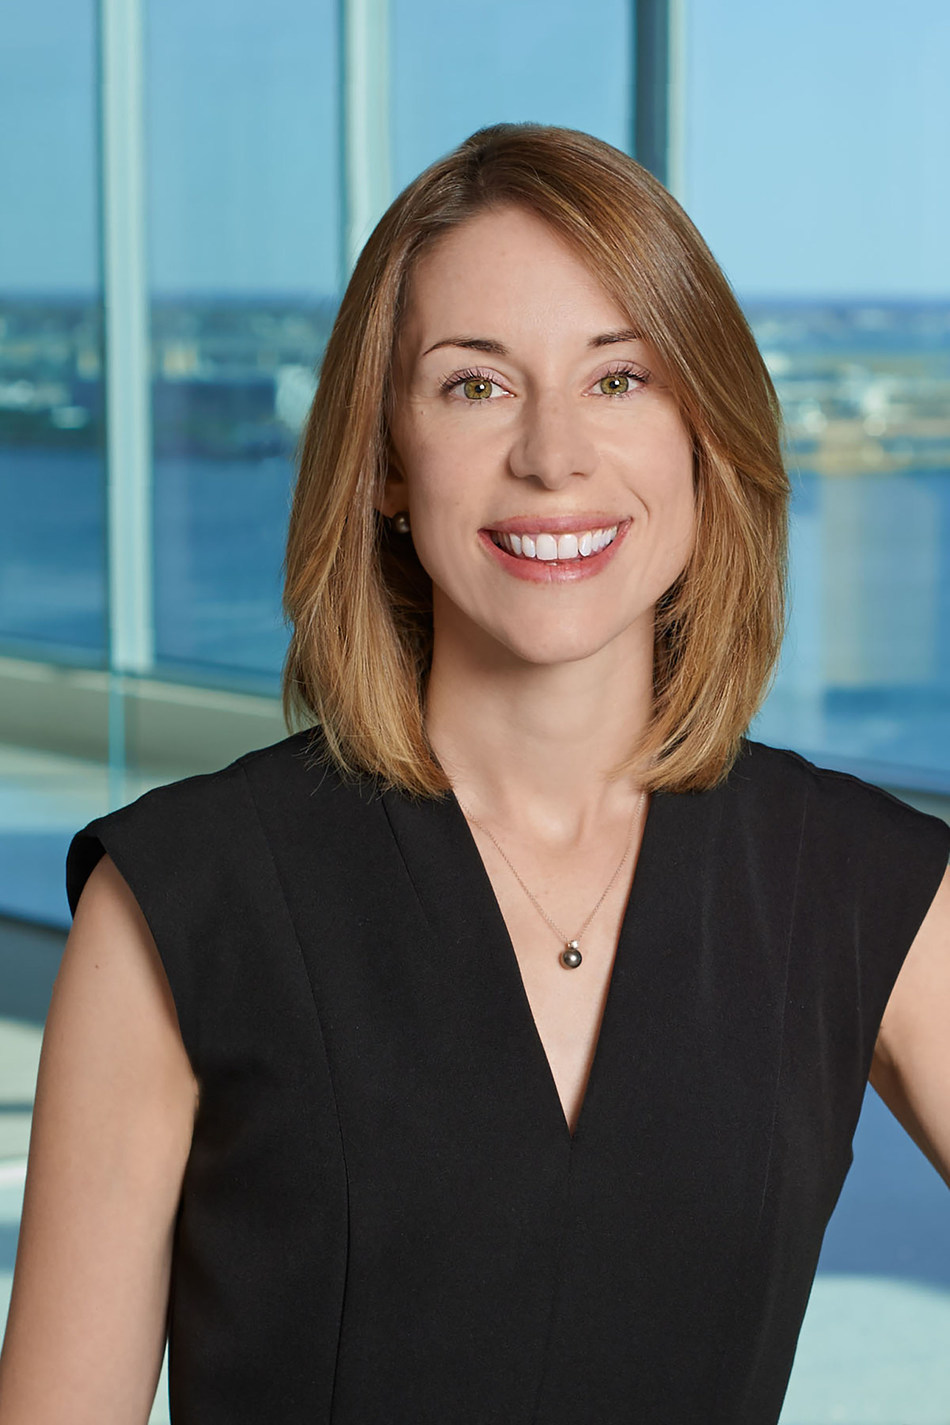 Rachel Merrick Maggs has joined Fish & Richardson as Chief Marketing and Business Development Officer (CMBDO), where she will be responsible for building and implementing the firm's global business development and marketing strategy.